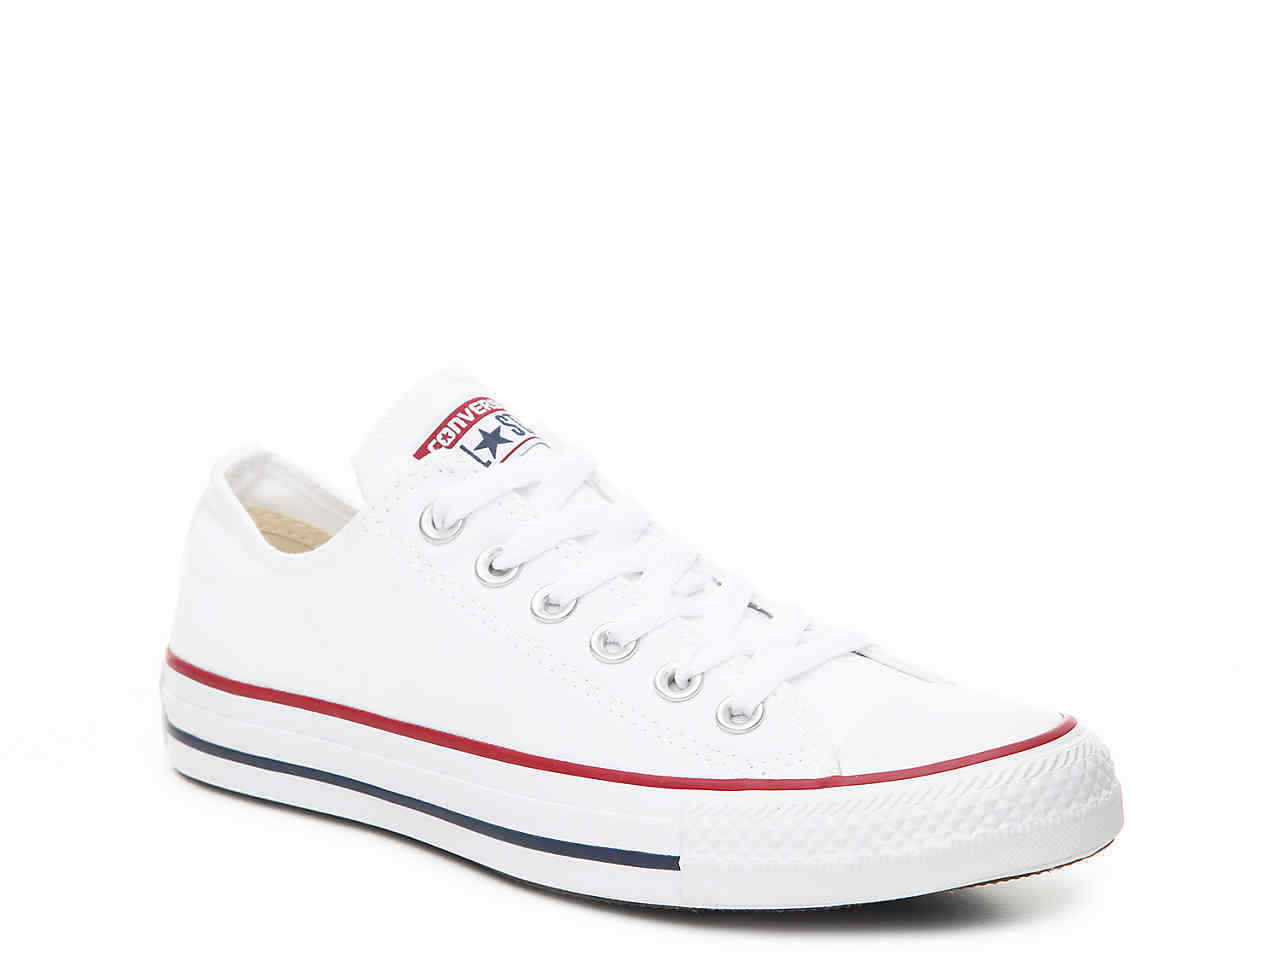 Low Tops Chuck Taylor Trainers Shoes